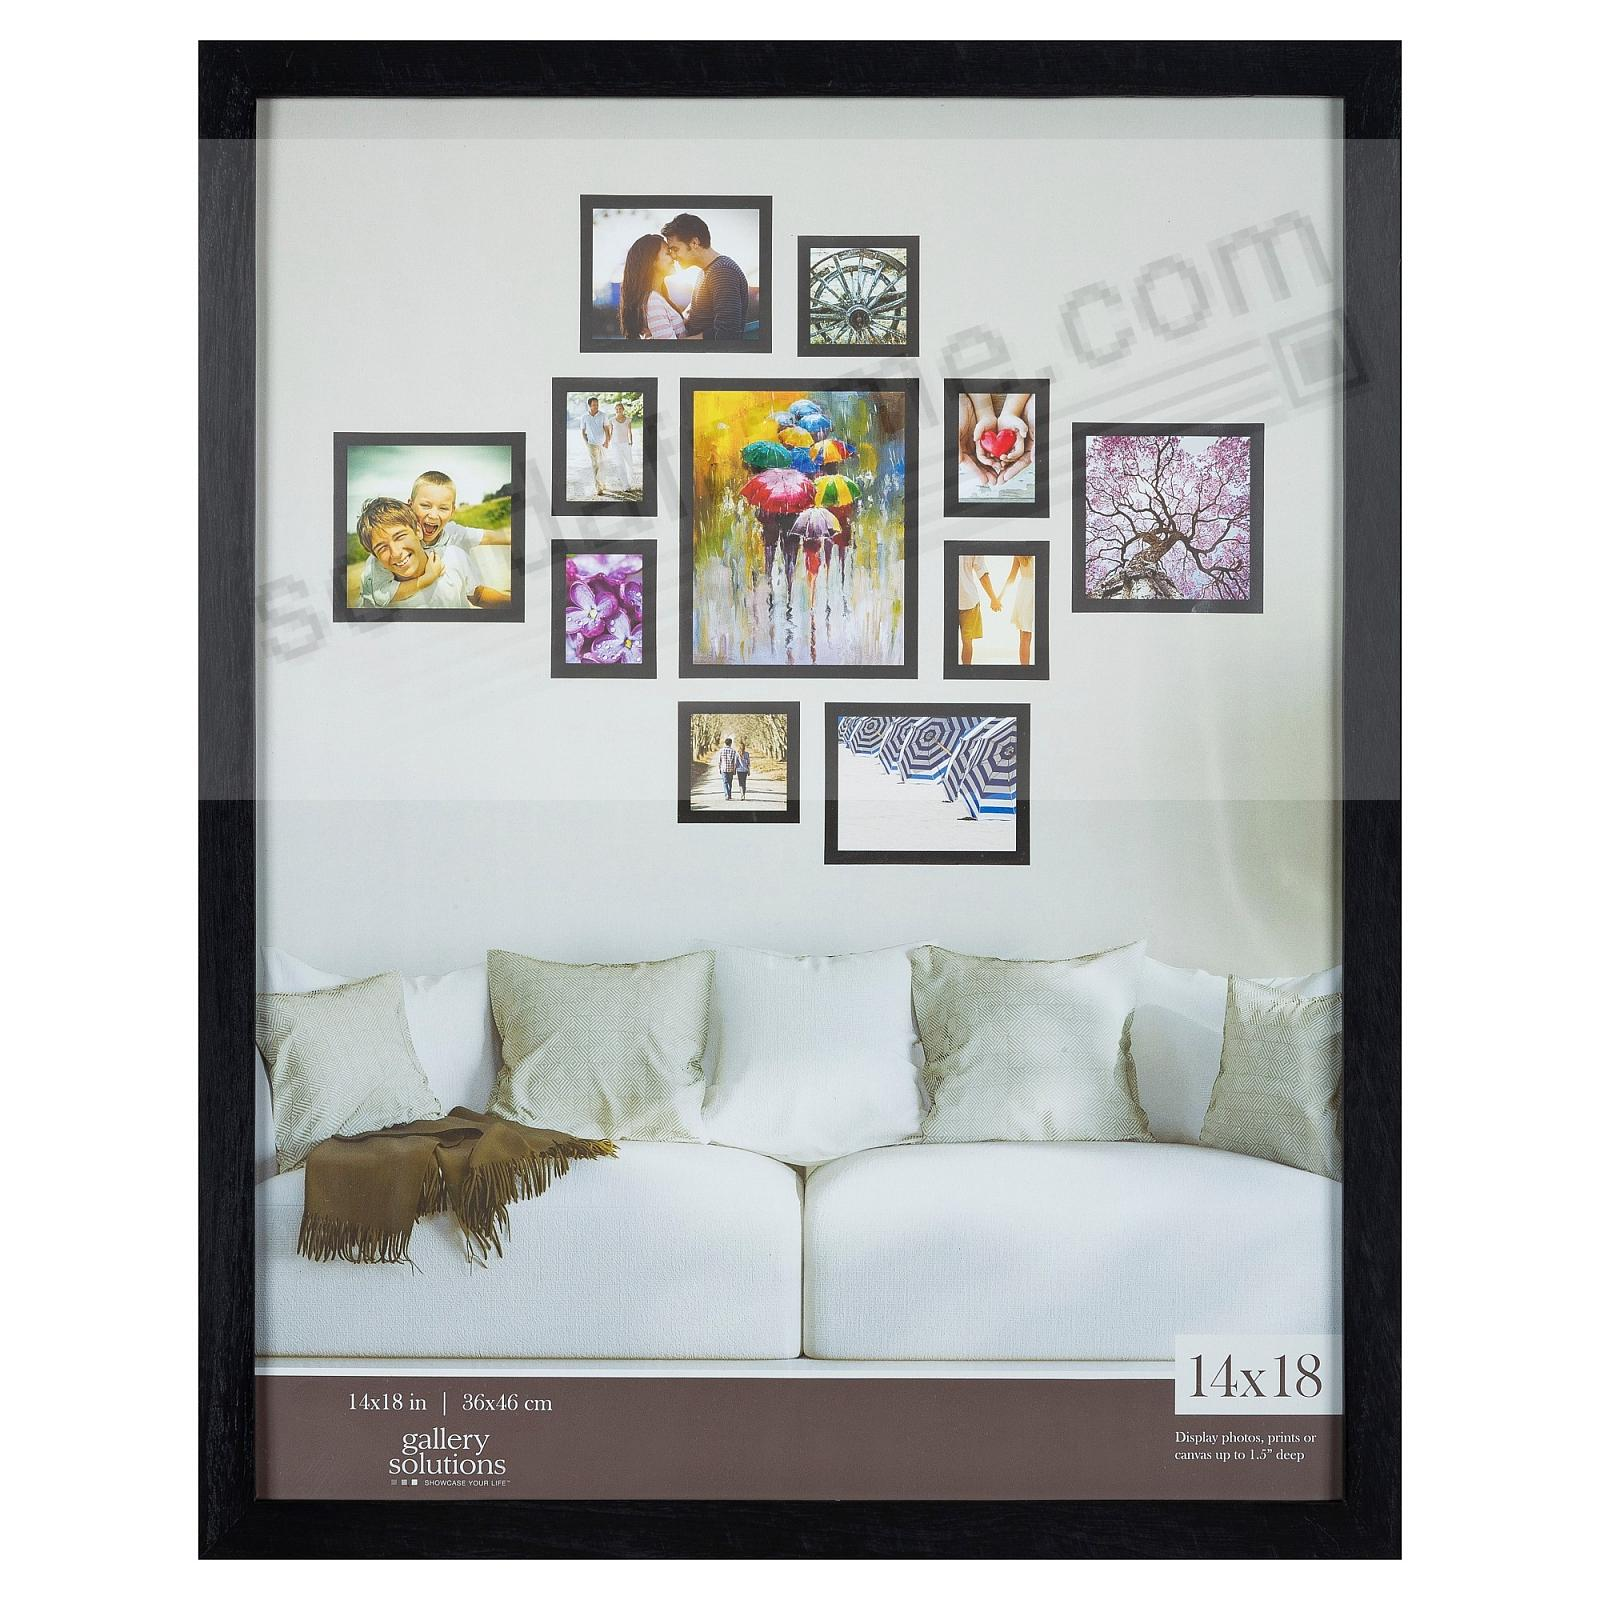 BLACK GALLERY 14x18 frame by Gallery Solutions®